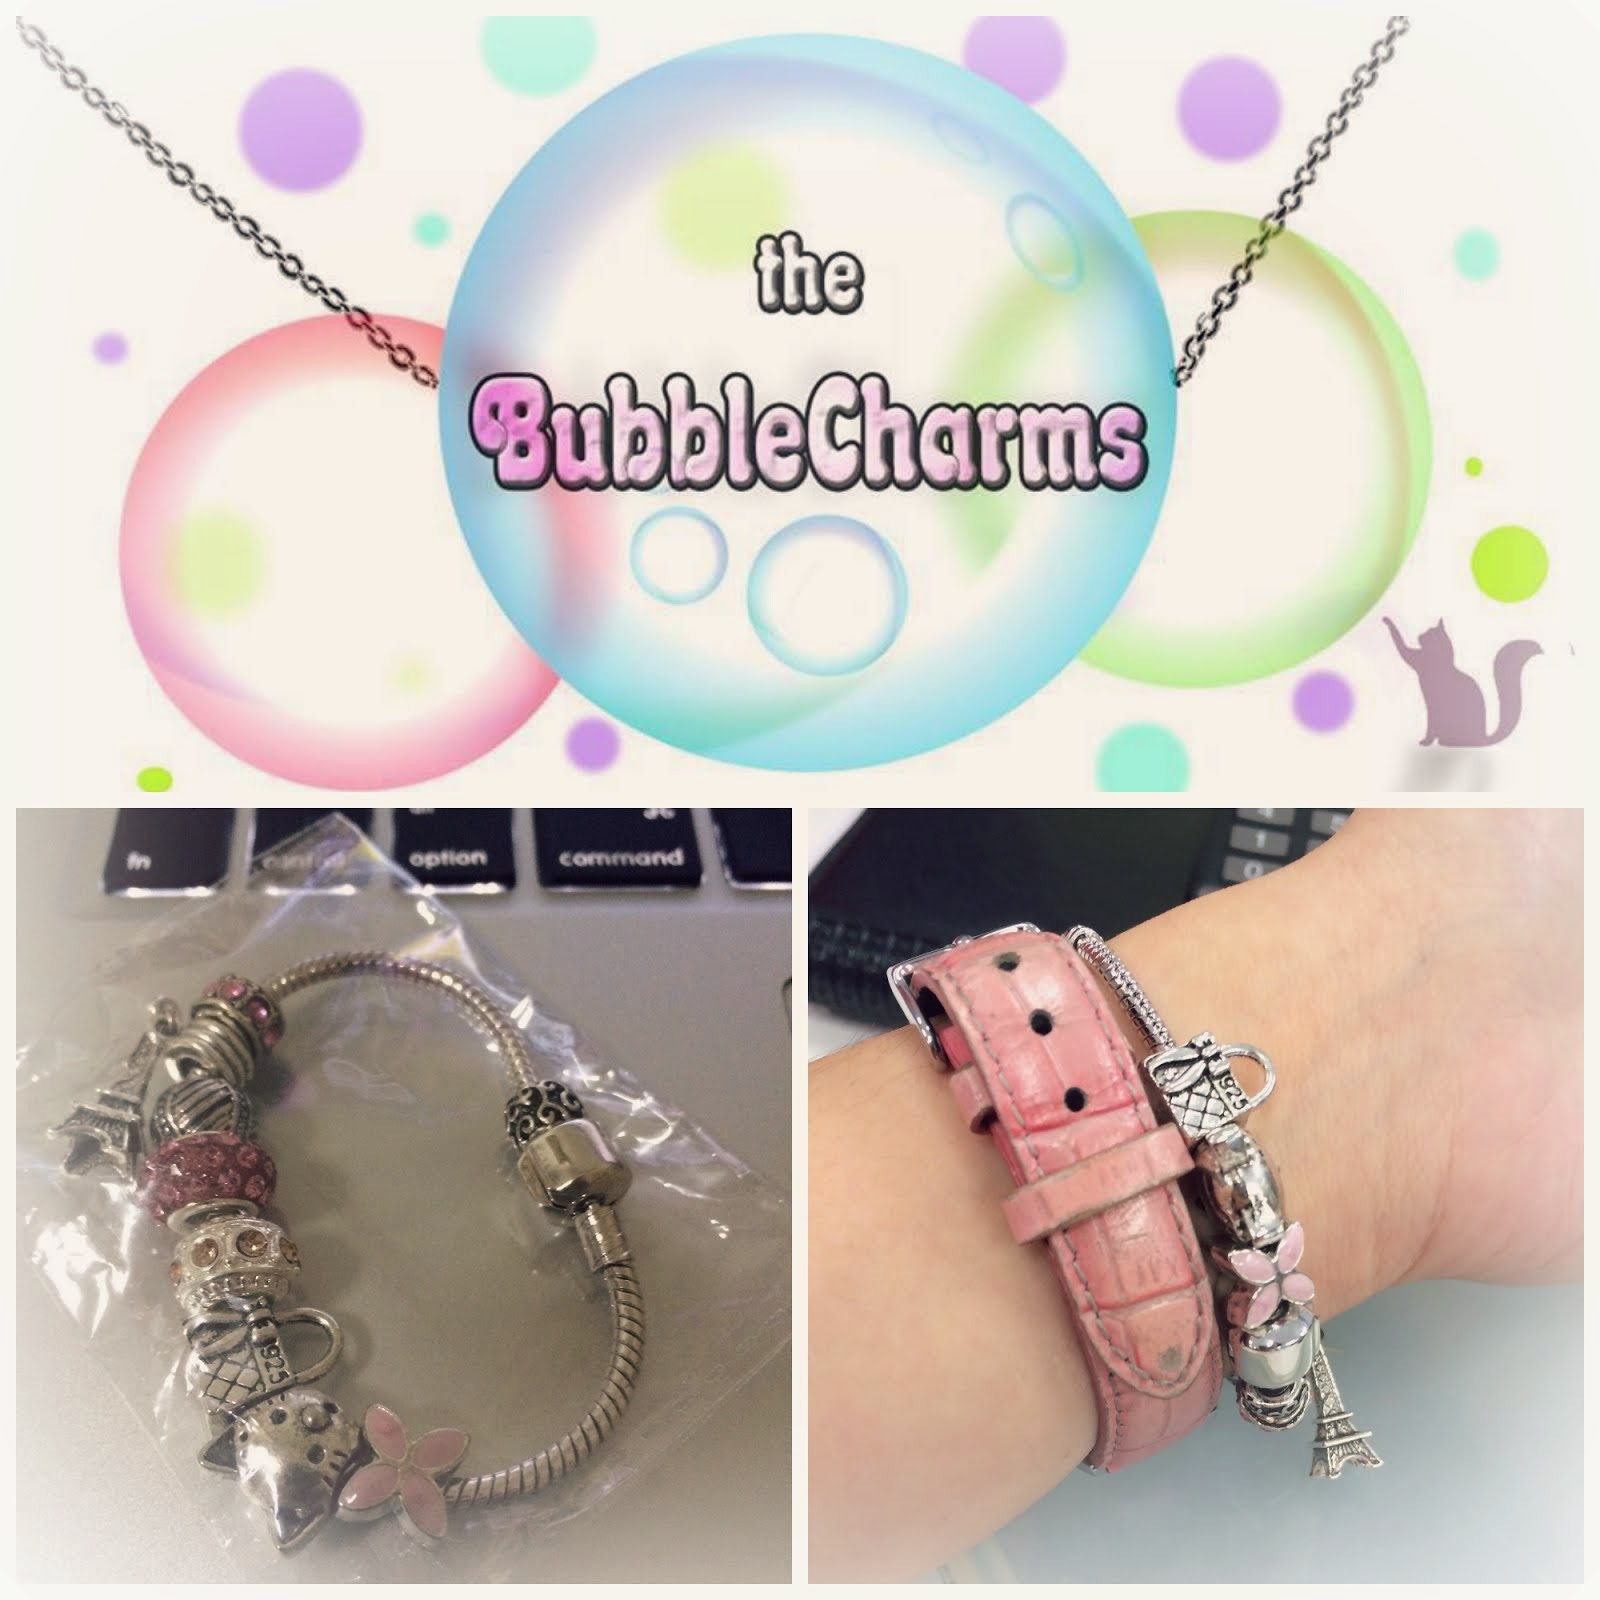 The Bubble Charms